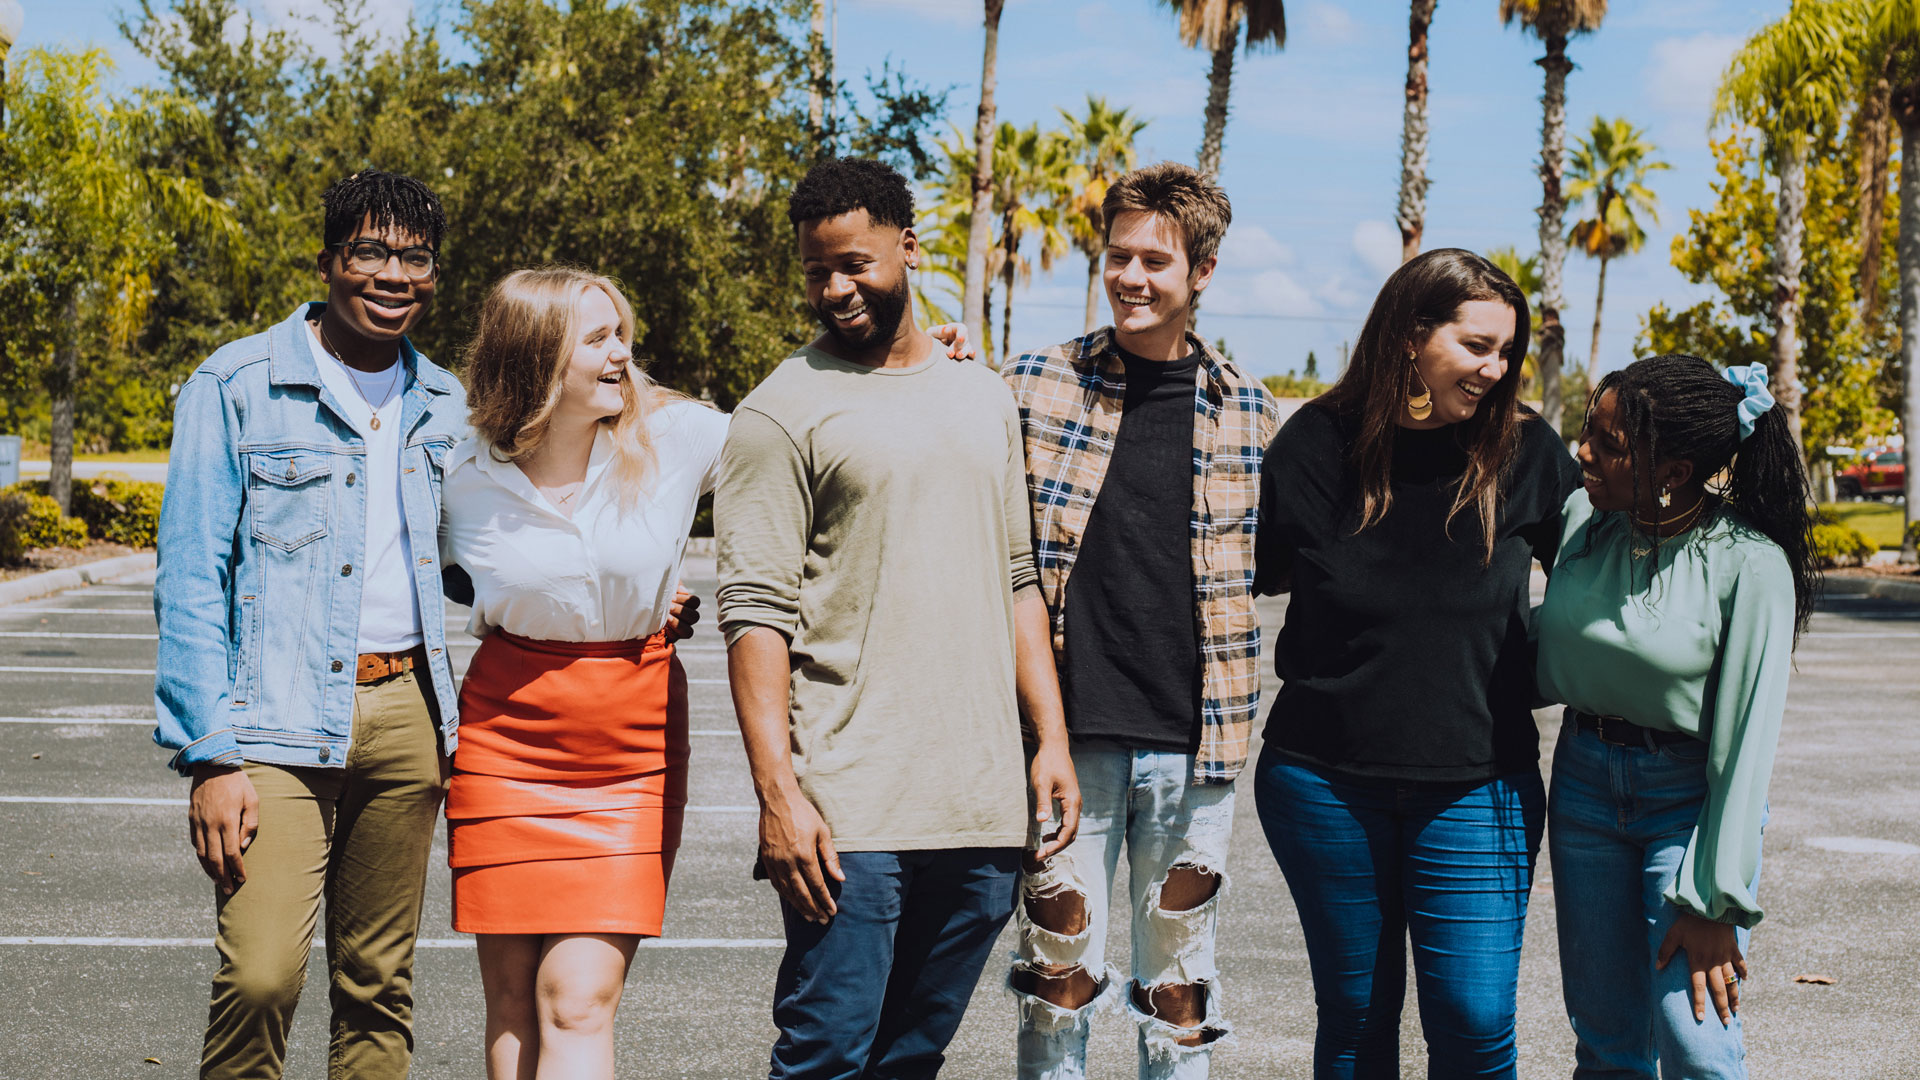 A group of people laughing and looking at each other.